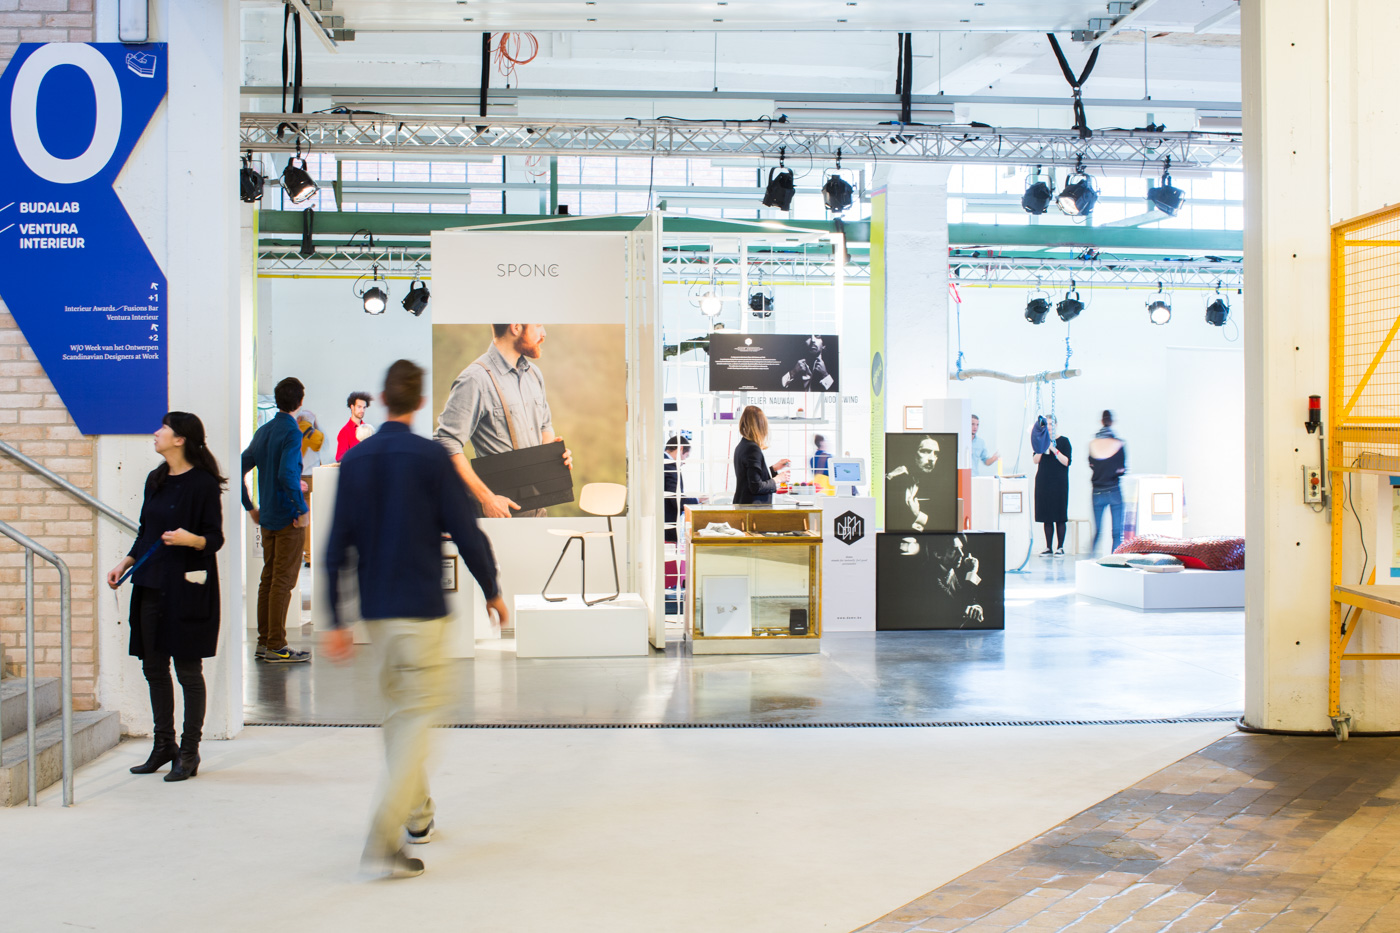 Bi nnale interieur 2014 focus on belgium for Biennale interieur